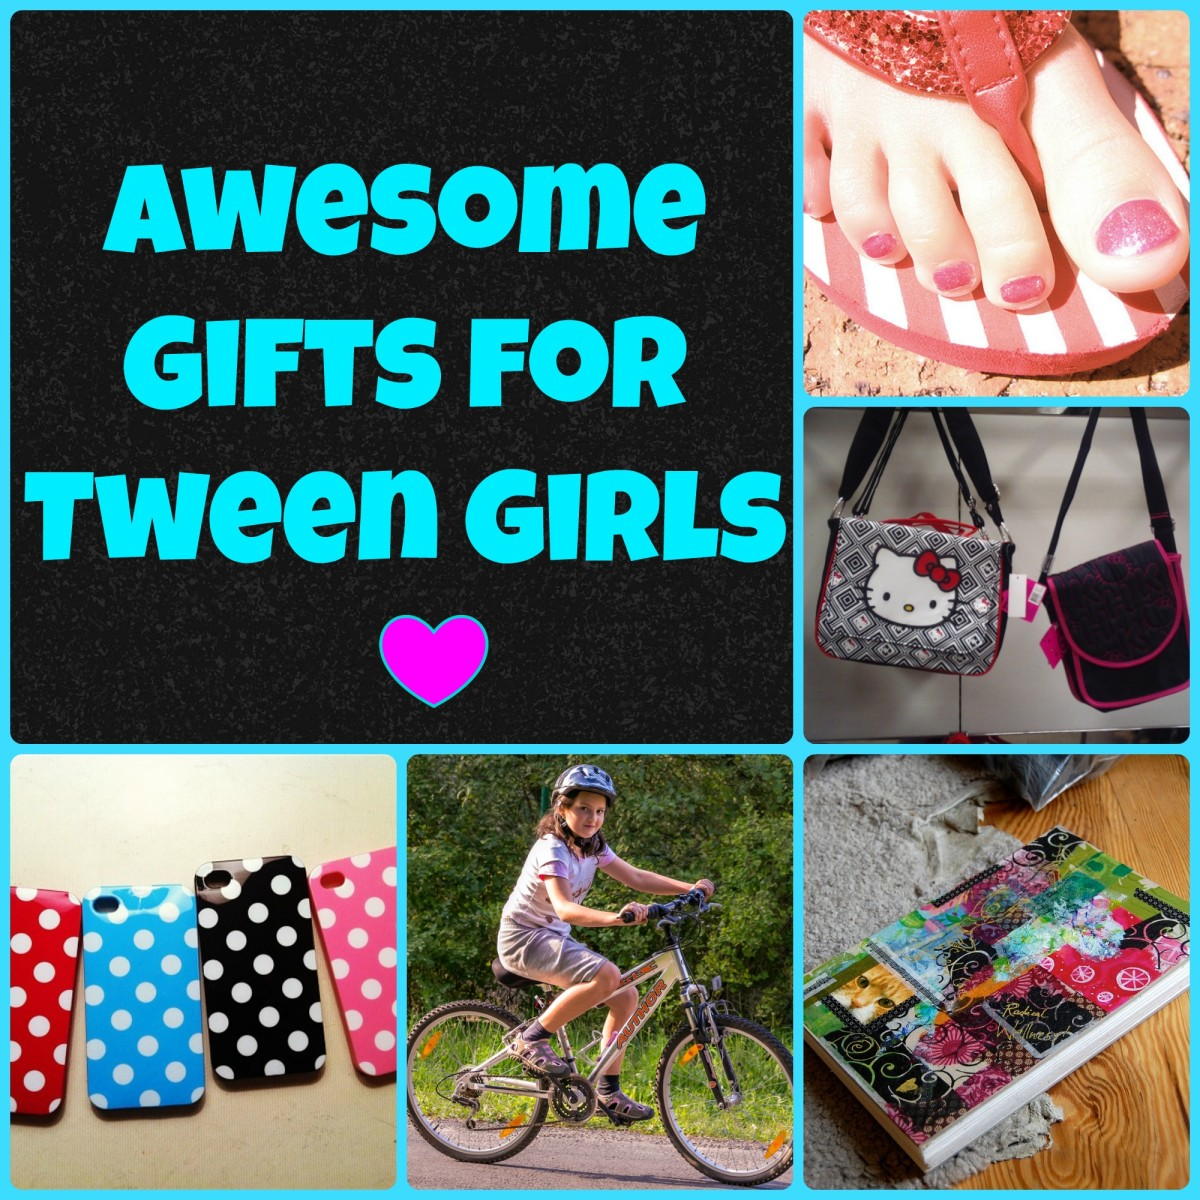 Gifts for Tween Girls (Ages 10 - 12)